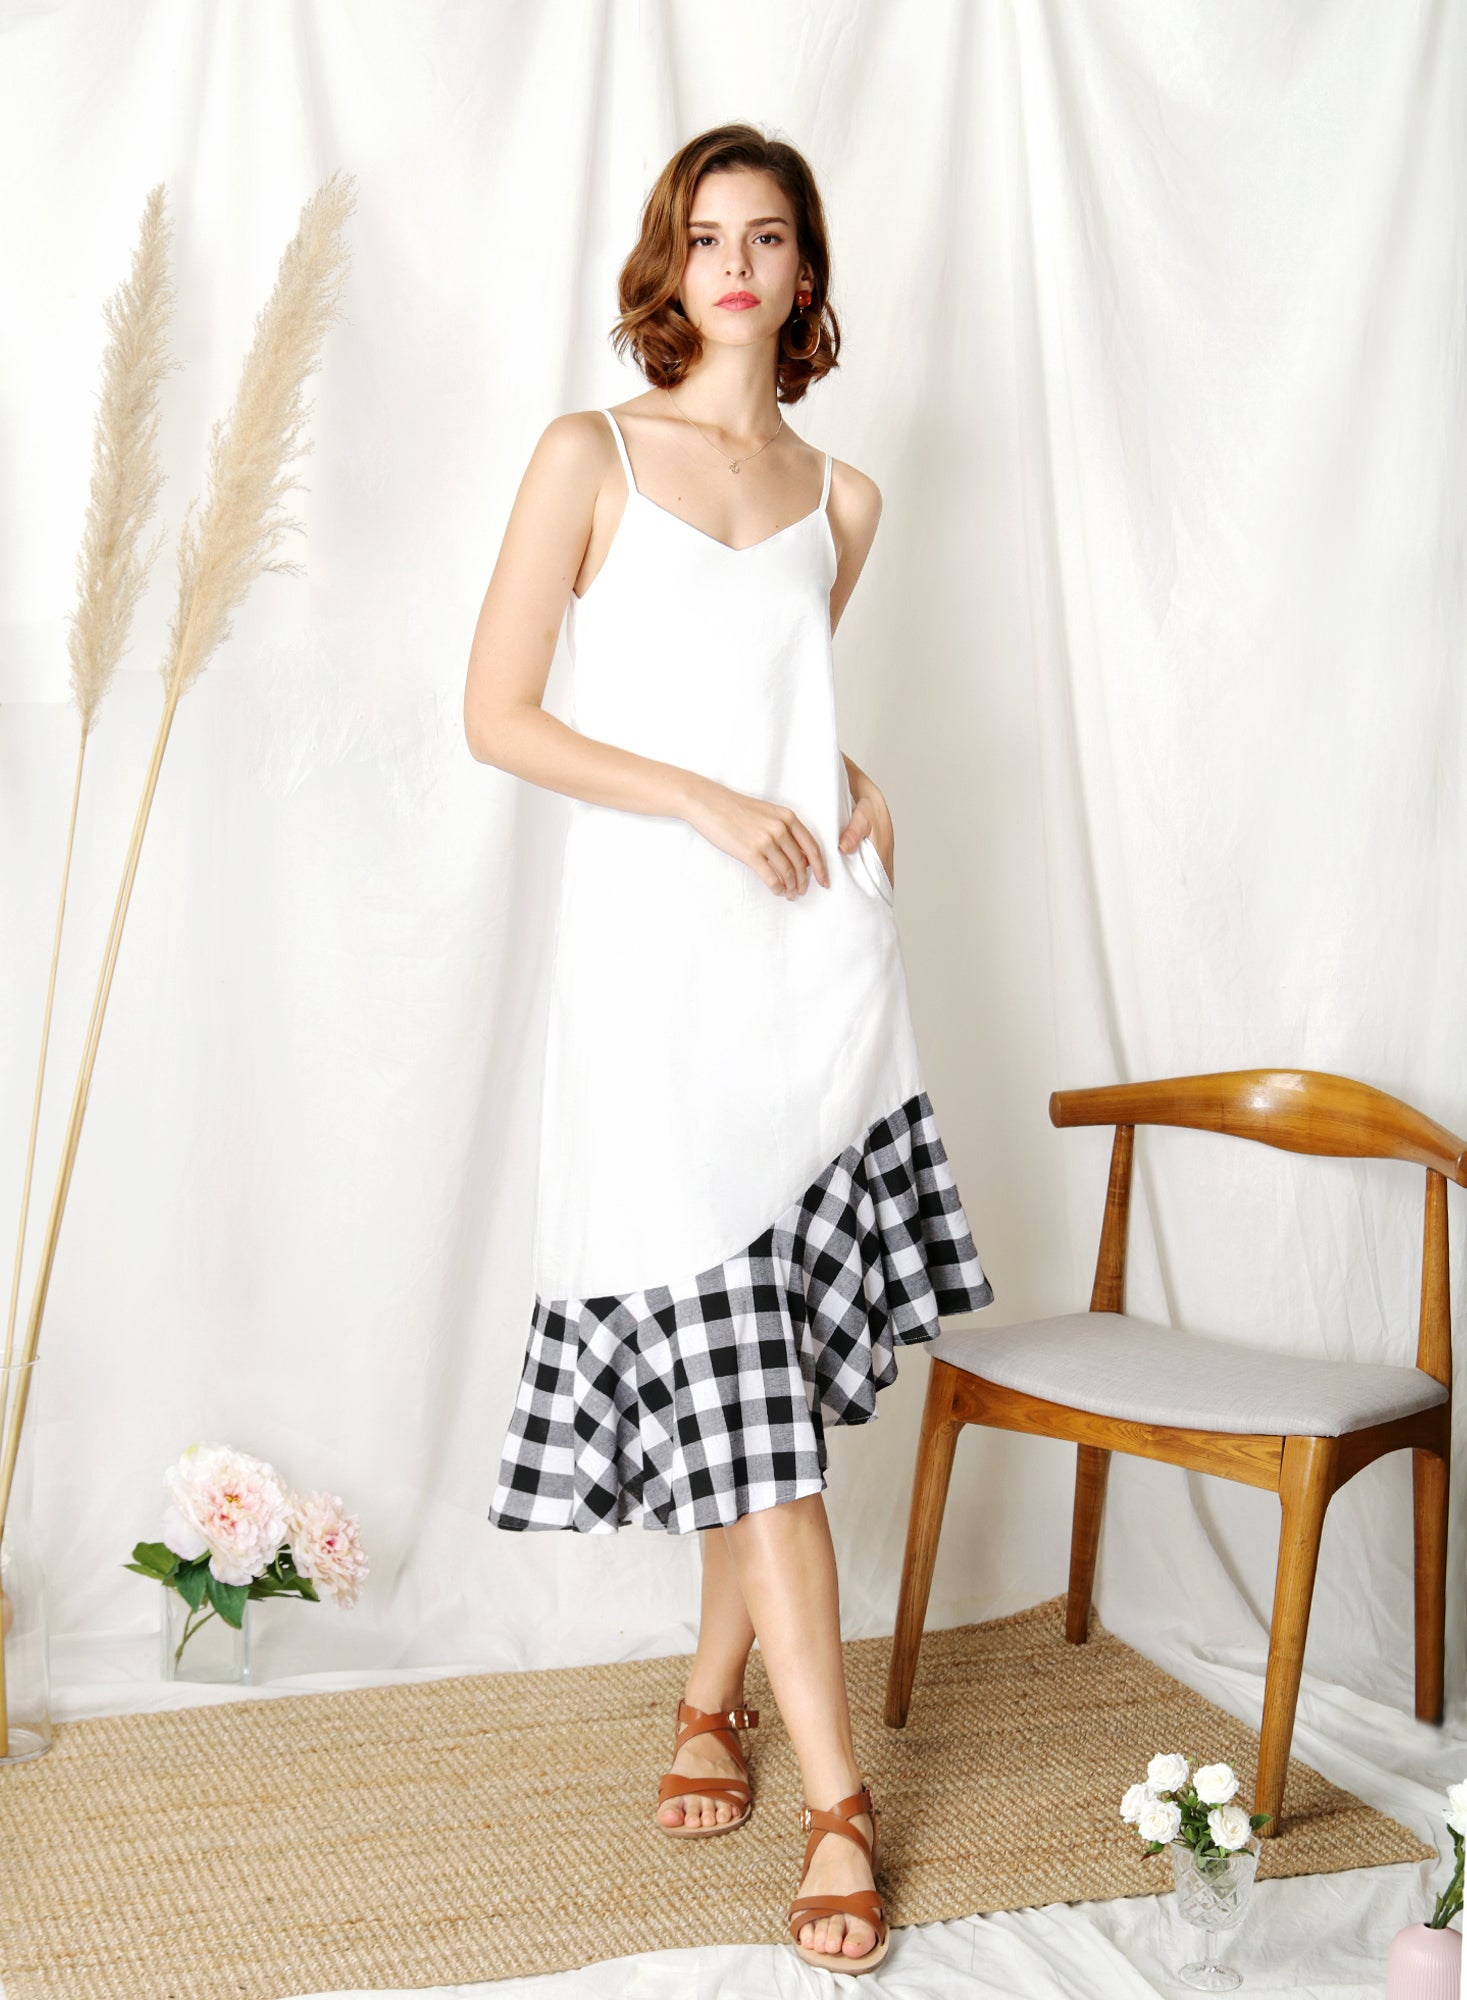 Sidelines Contrast Hem Maxi Dress (White/Black) - And Well Dressed